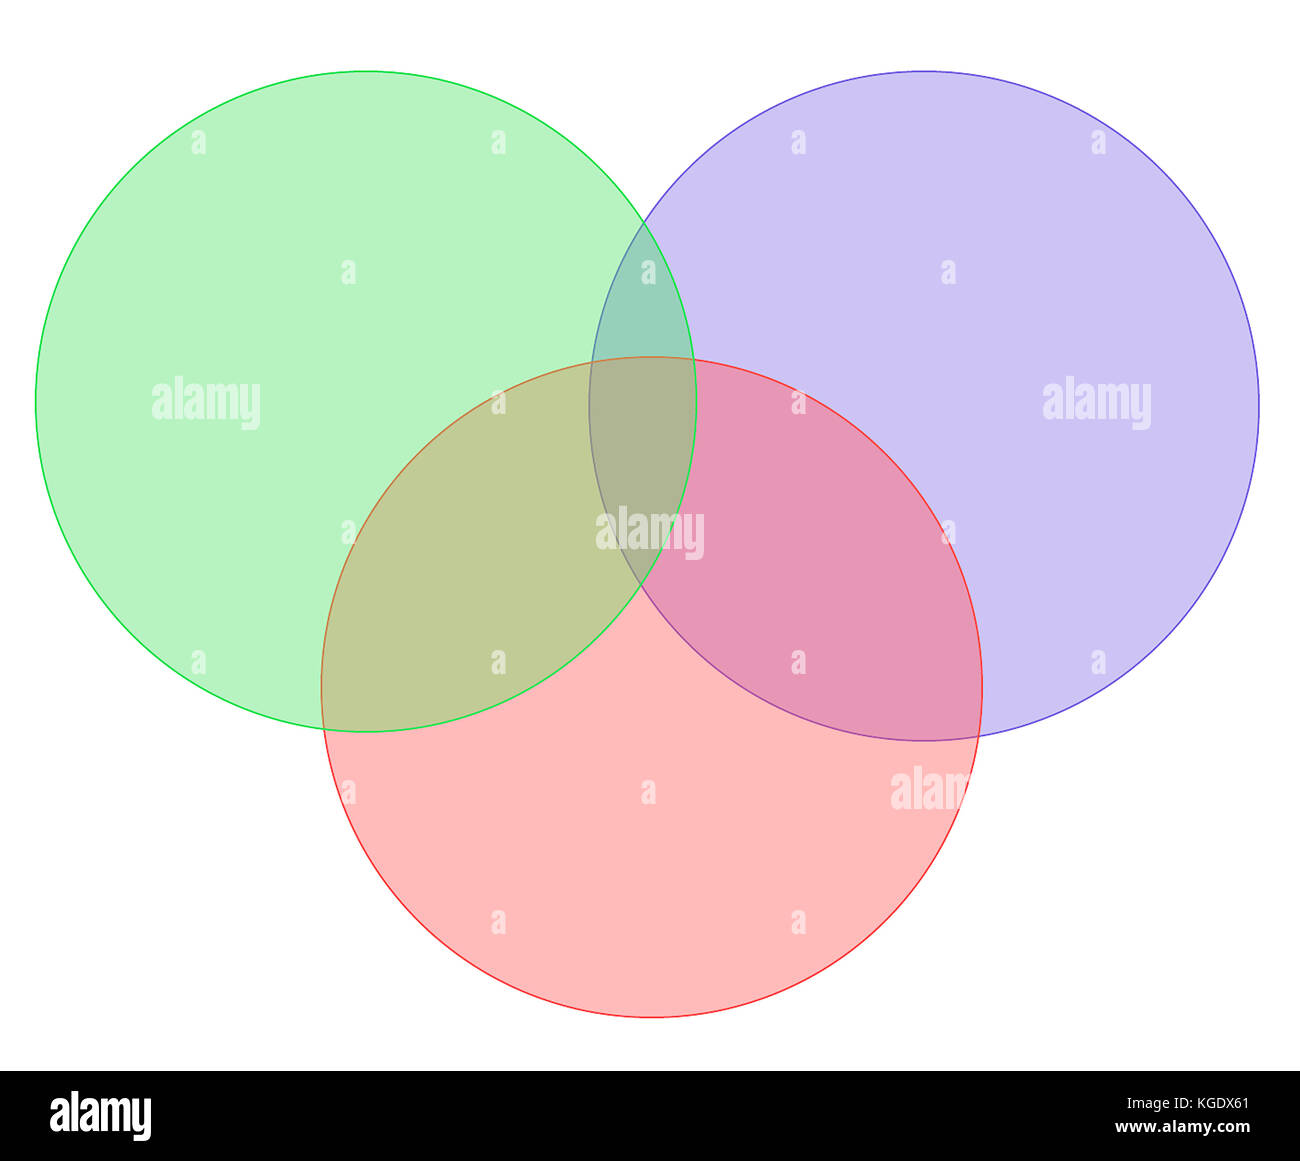 3 colored venn diagram on white background